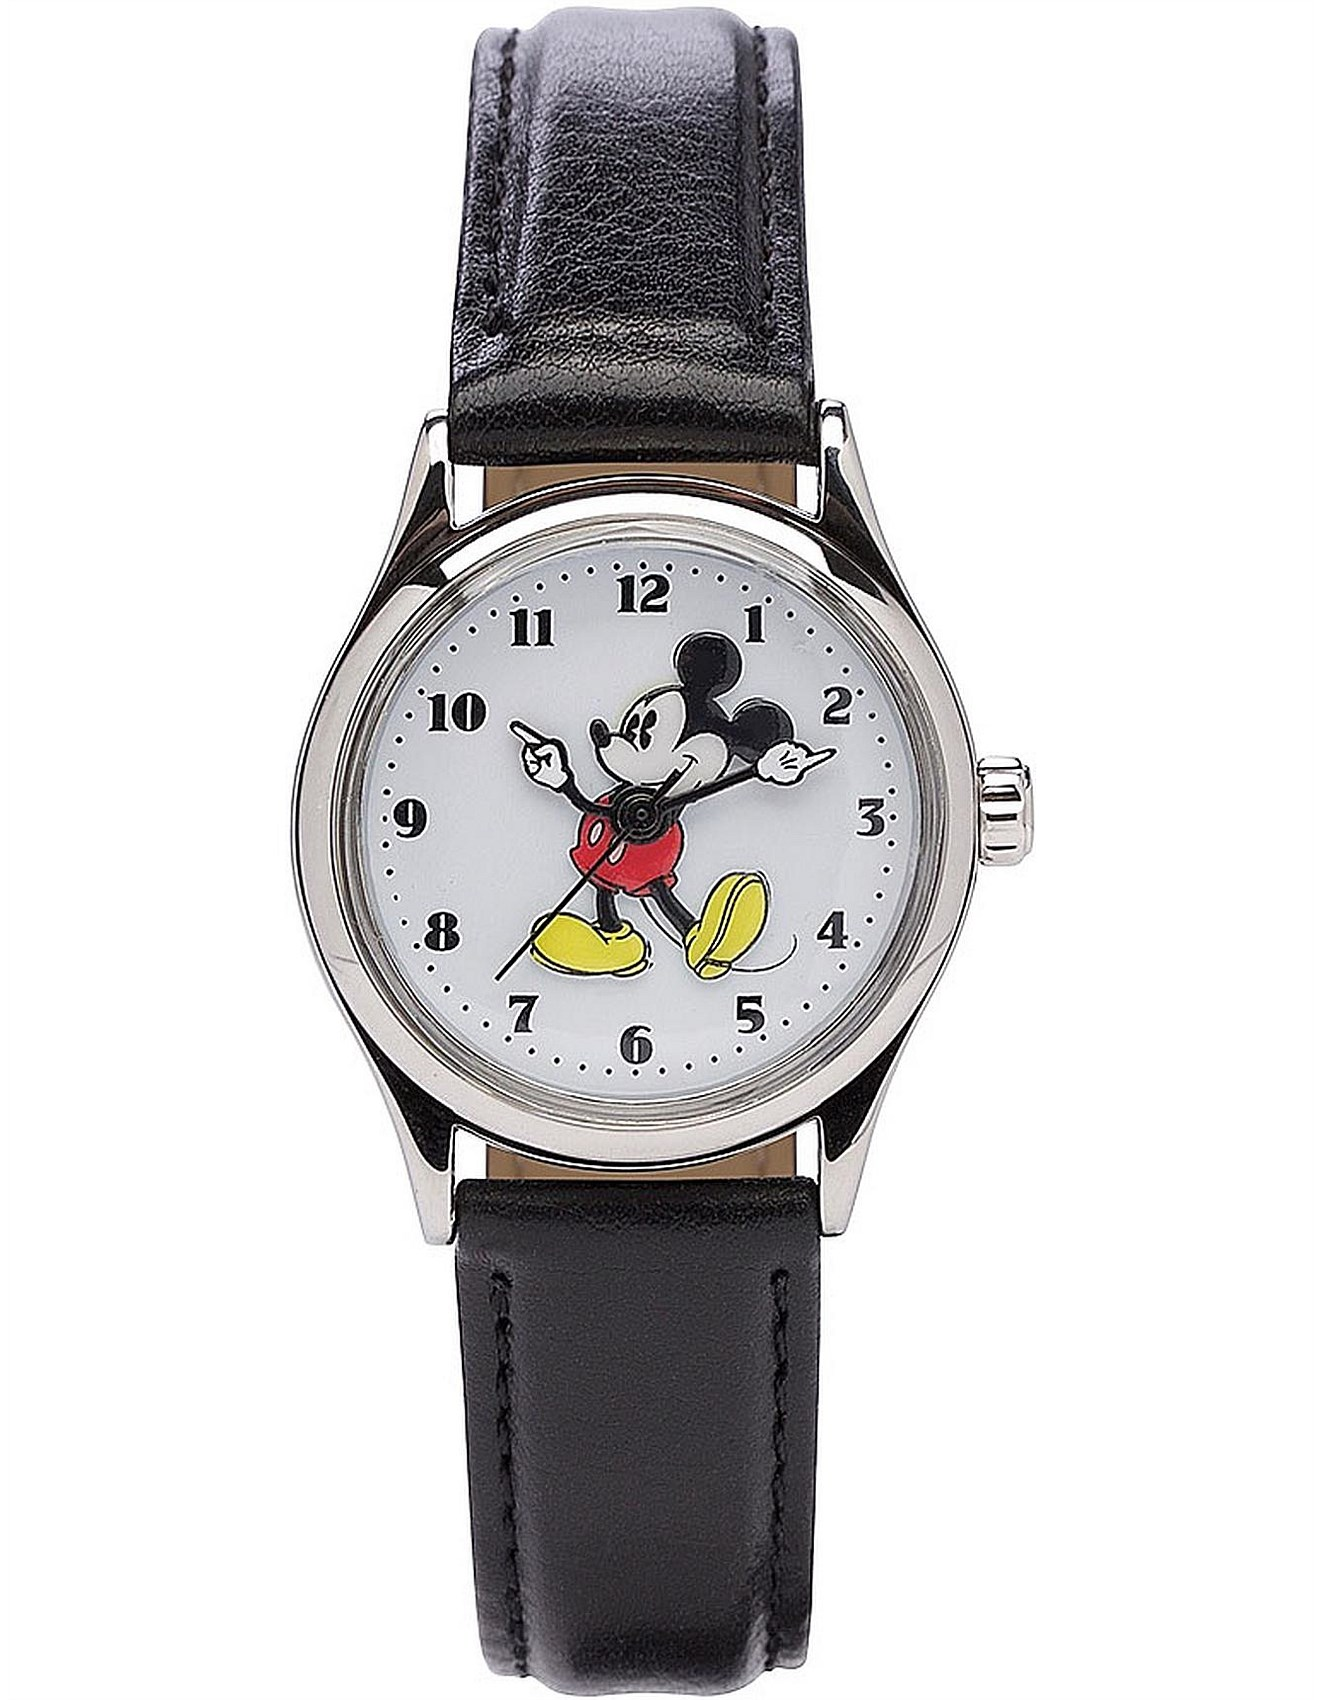 66f6923bbcf Disney Original Mickey Watch